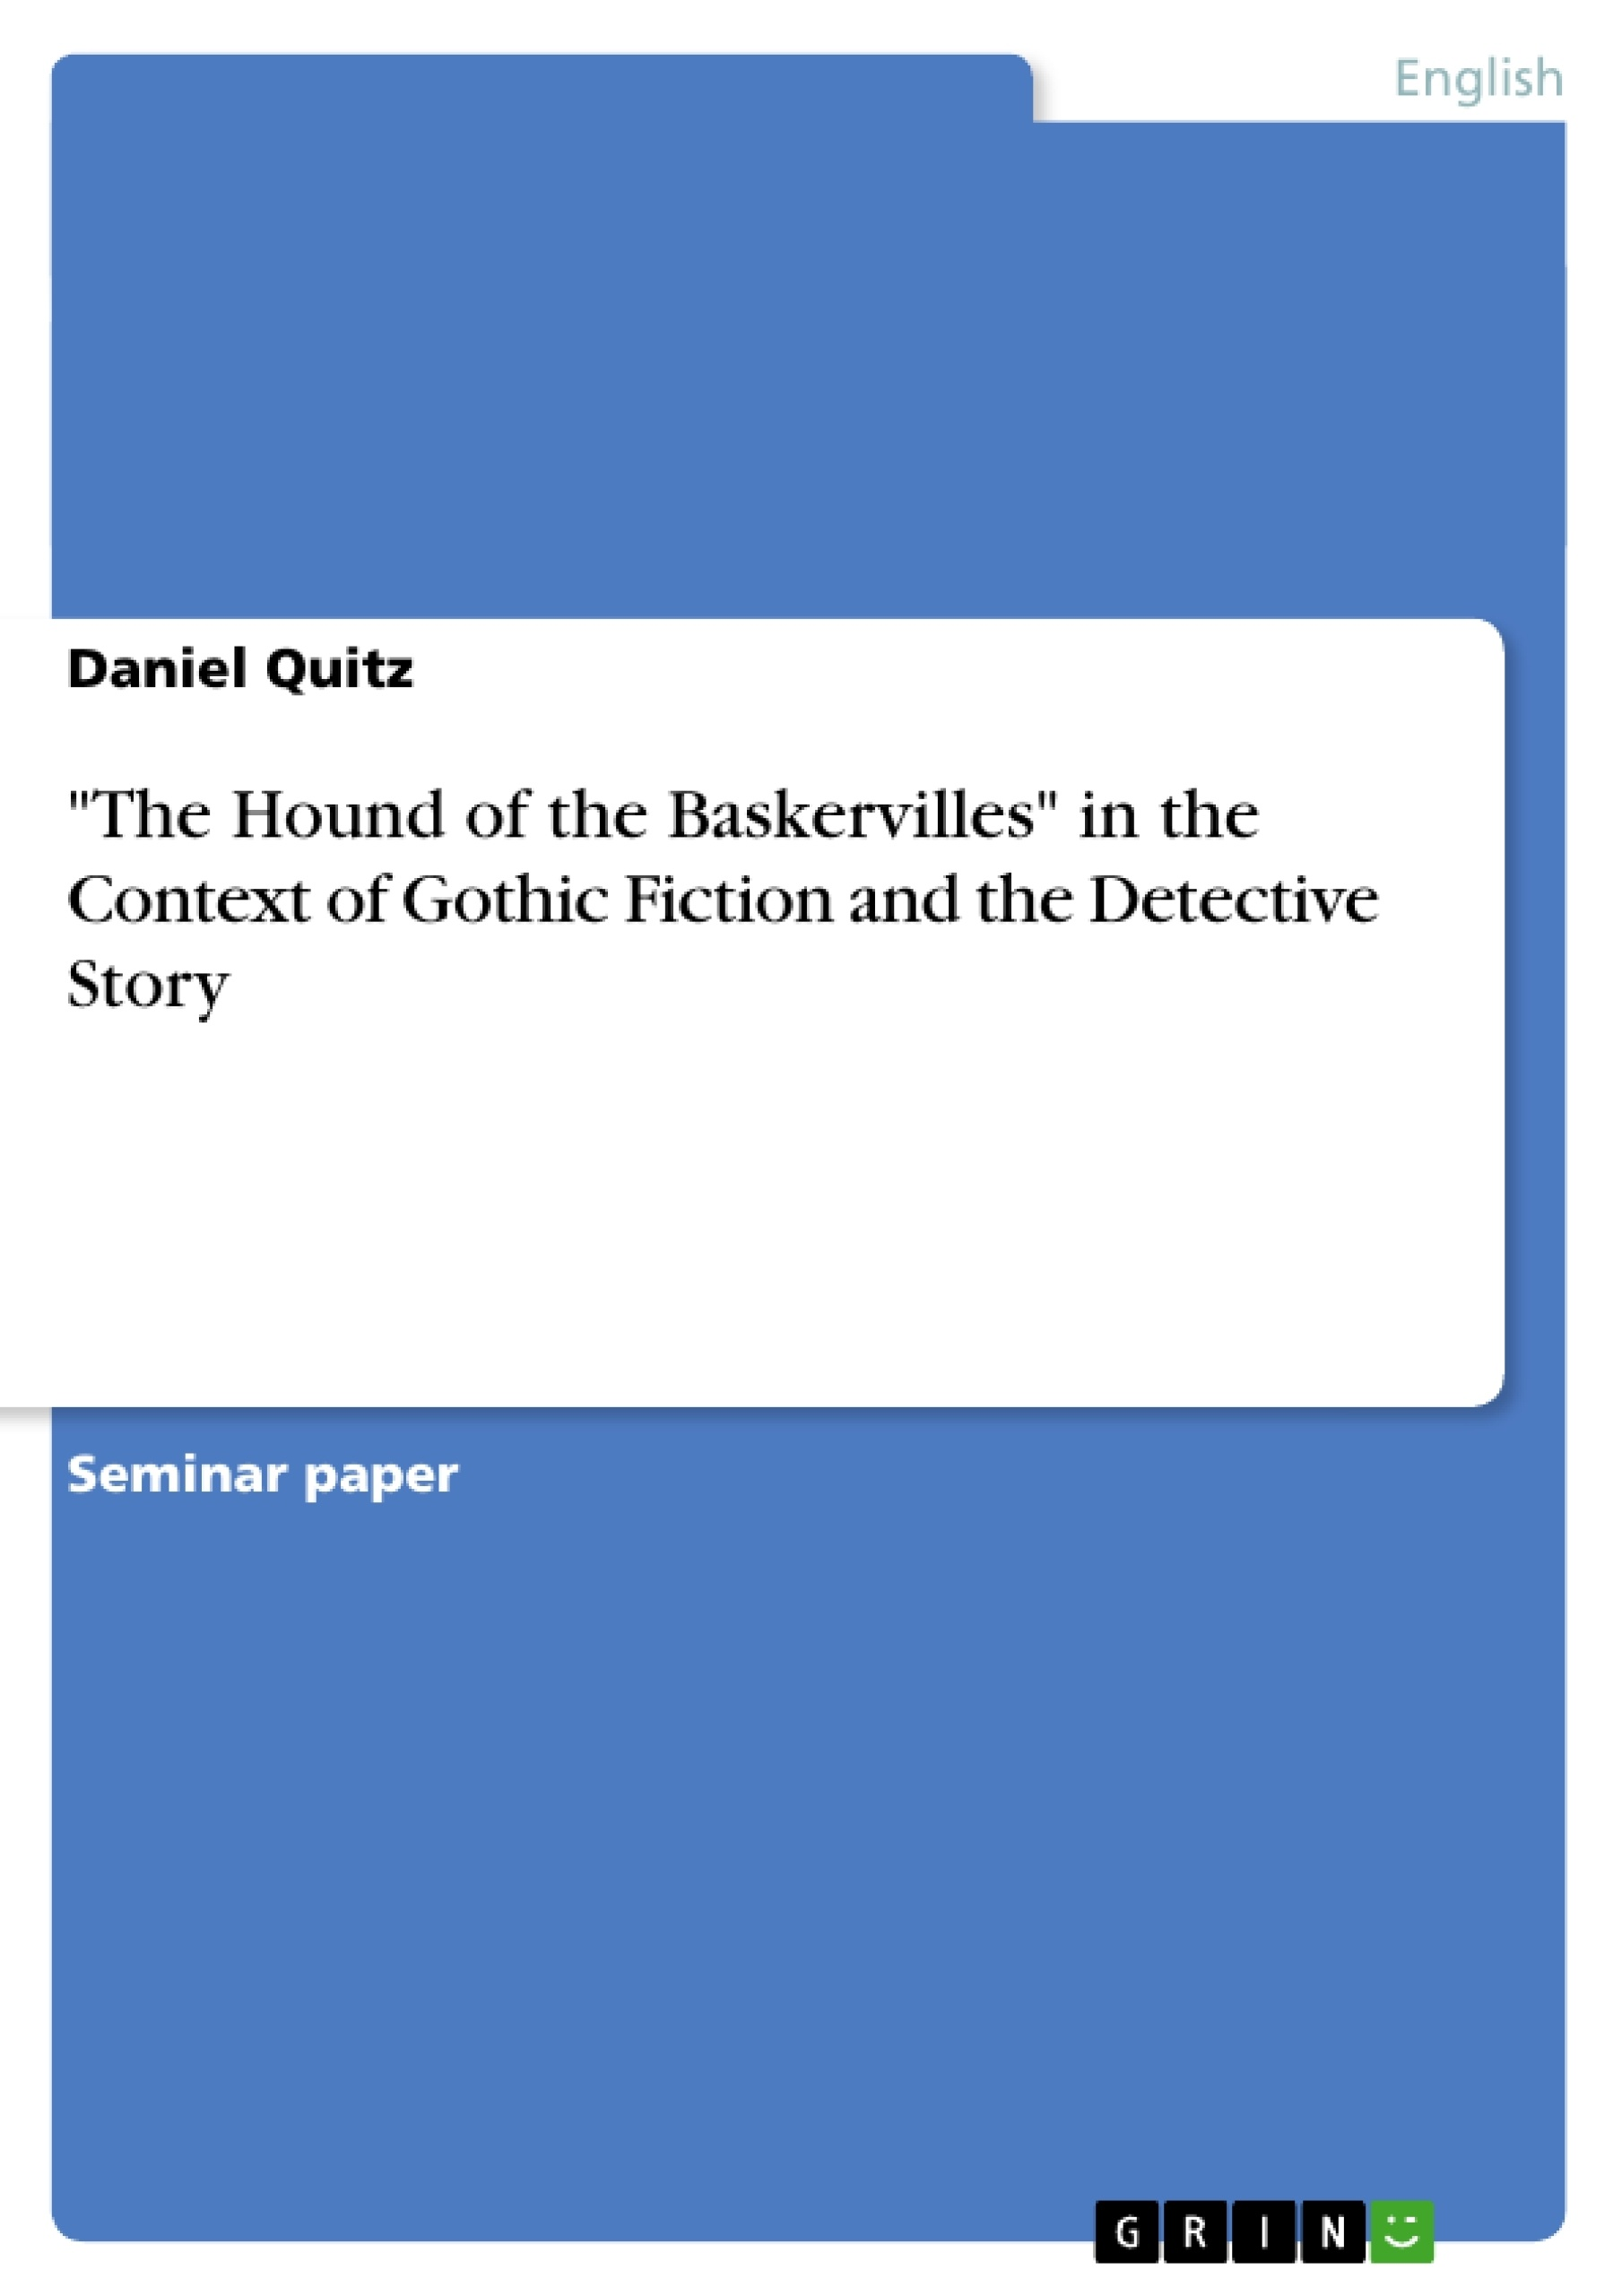 the hound of the baskervilles in the context of gothic fiction the hound of the baskervilles in the context of gothic fiction publish your master s thesis bachelor s thesis essay or term paper